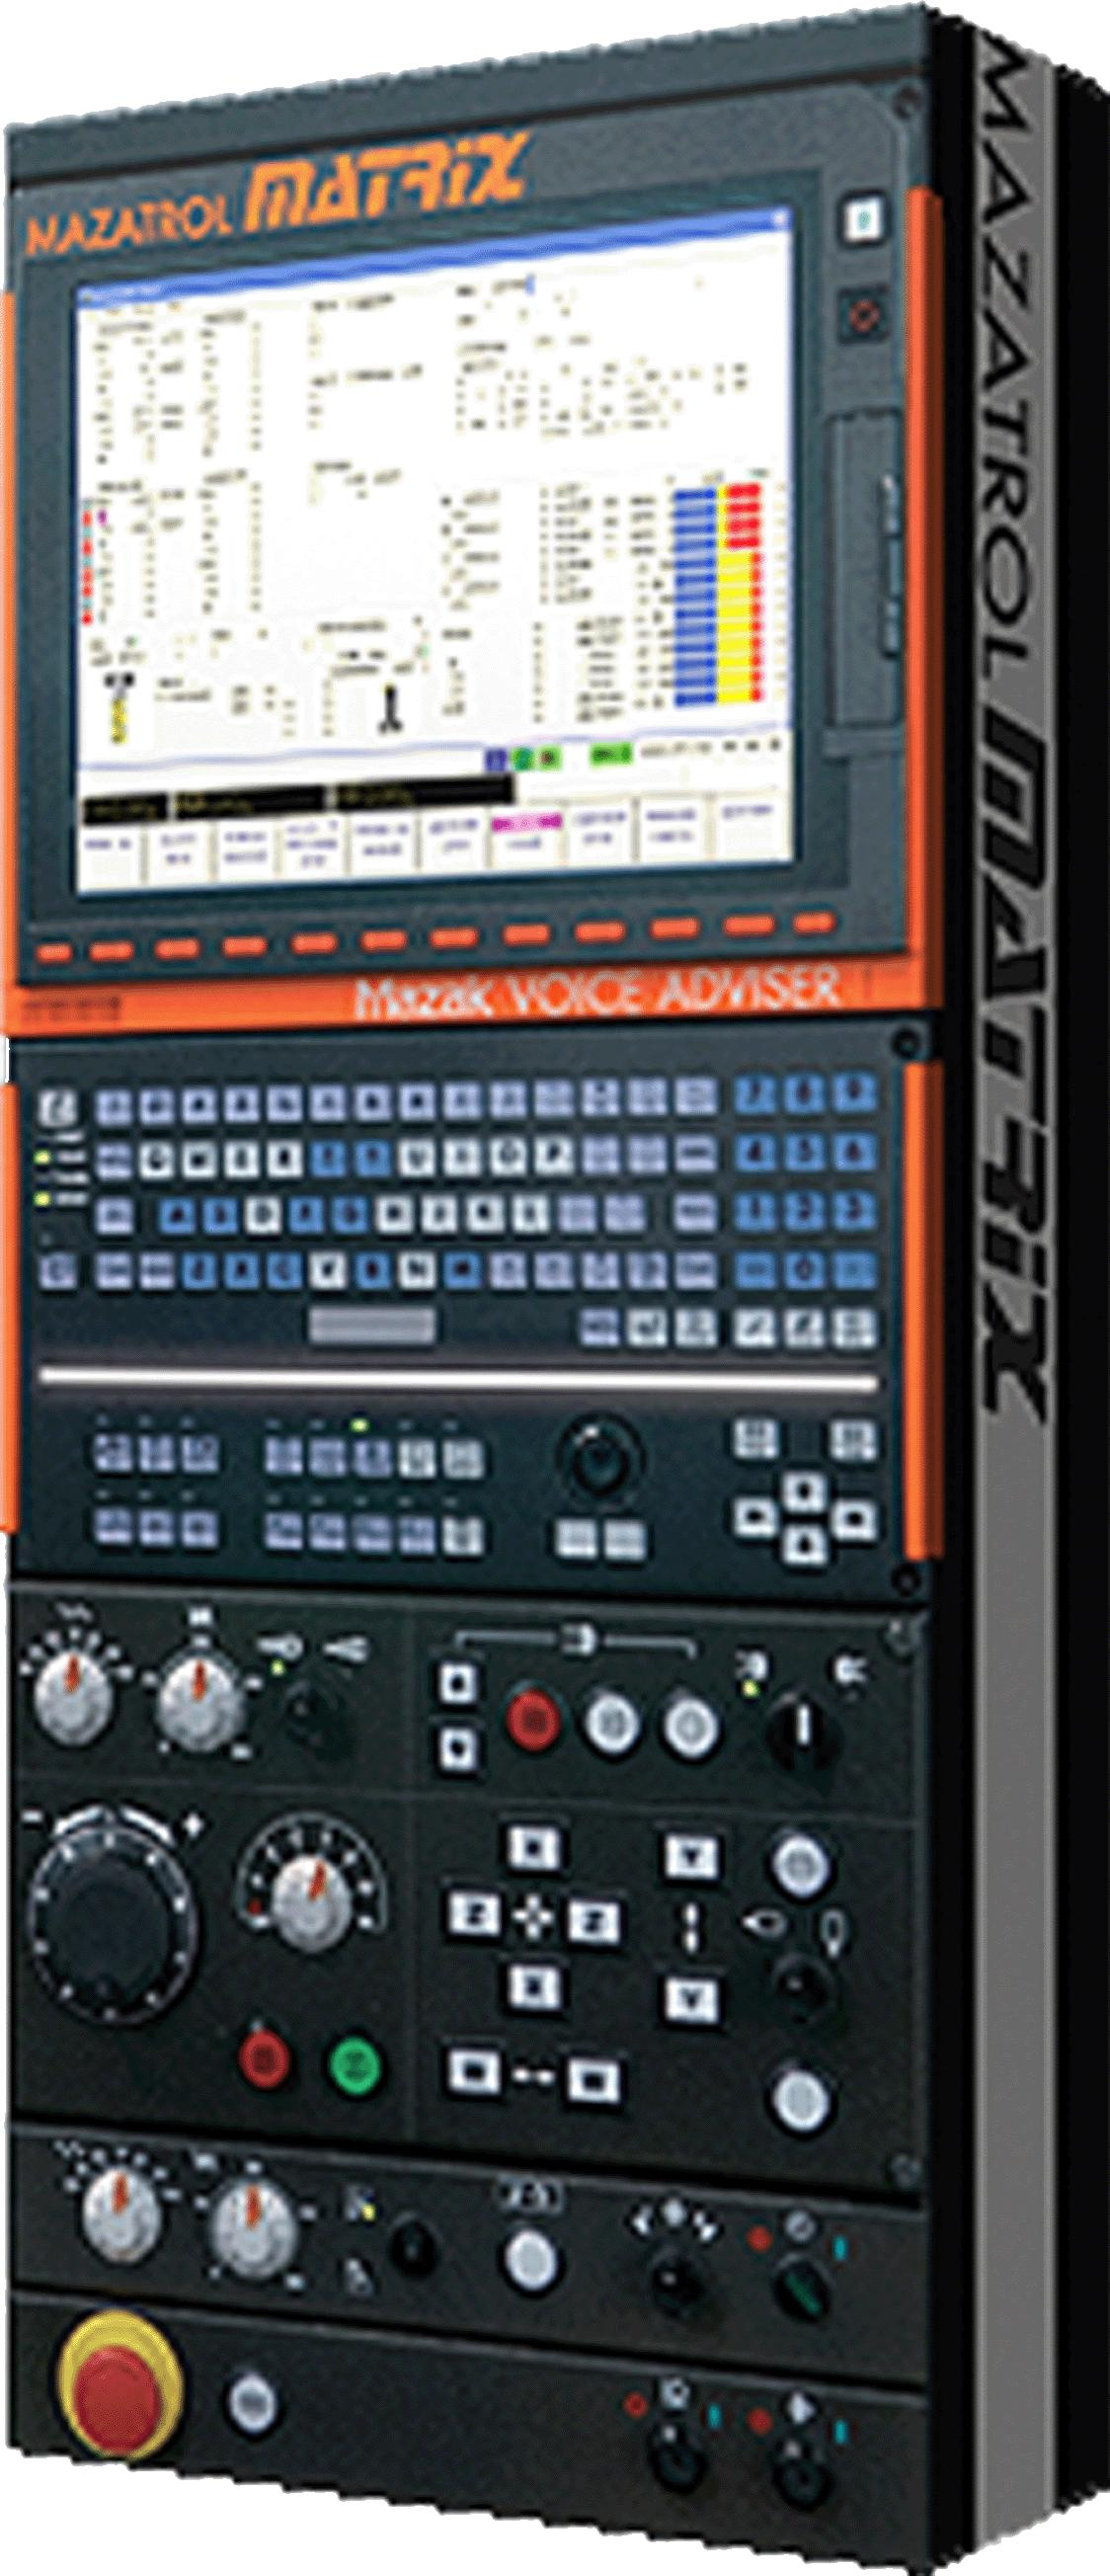 Mazatrol MATRIX - 6th Generation CNC Controller | Industry ...